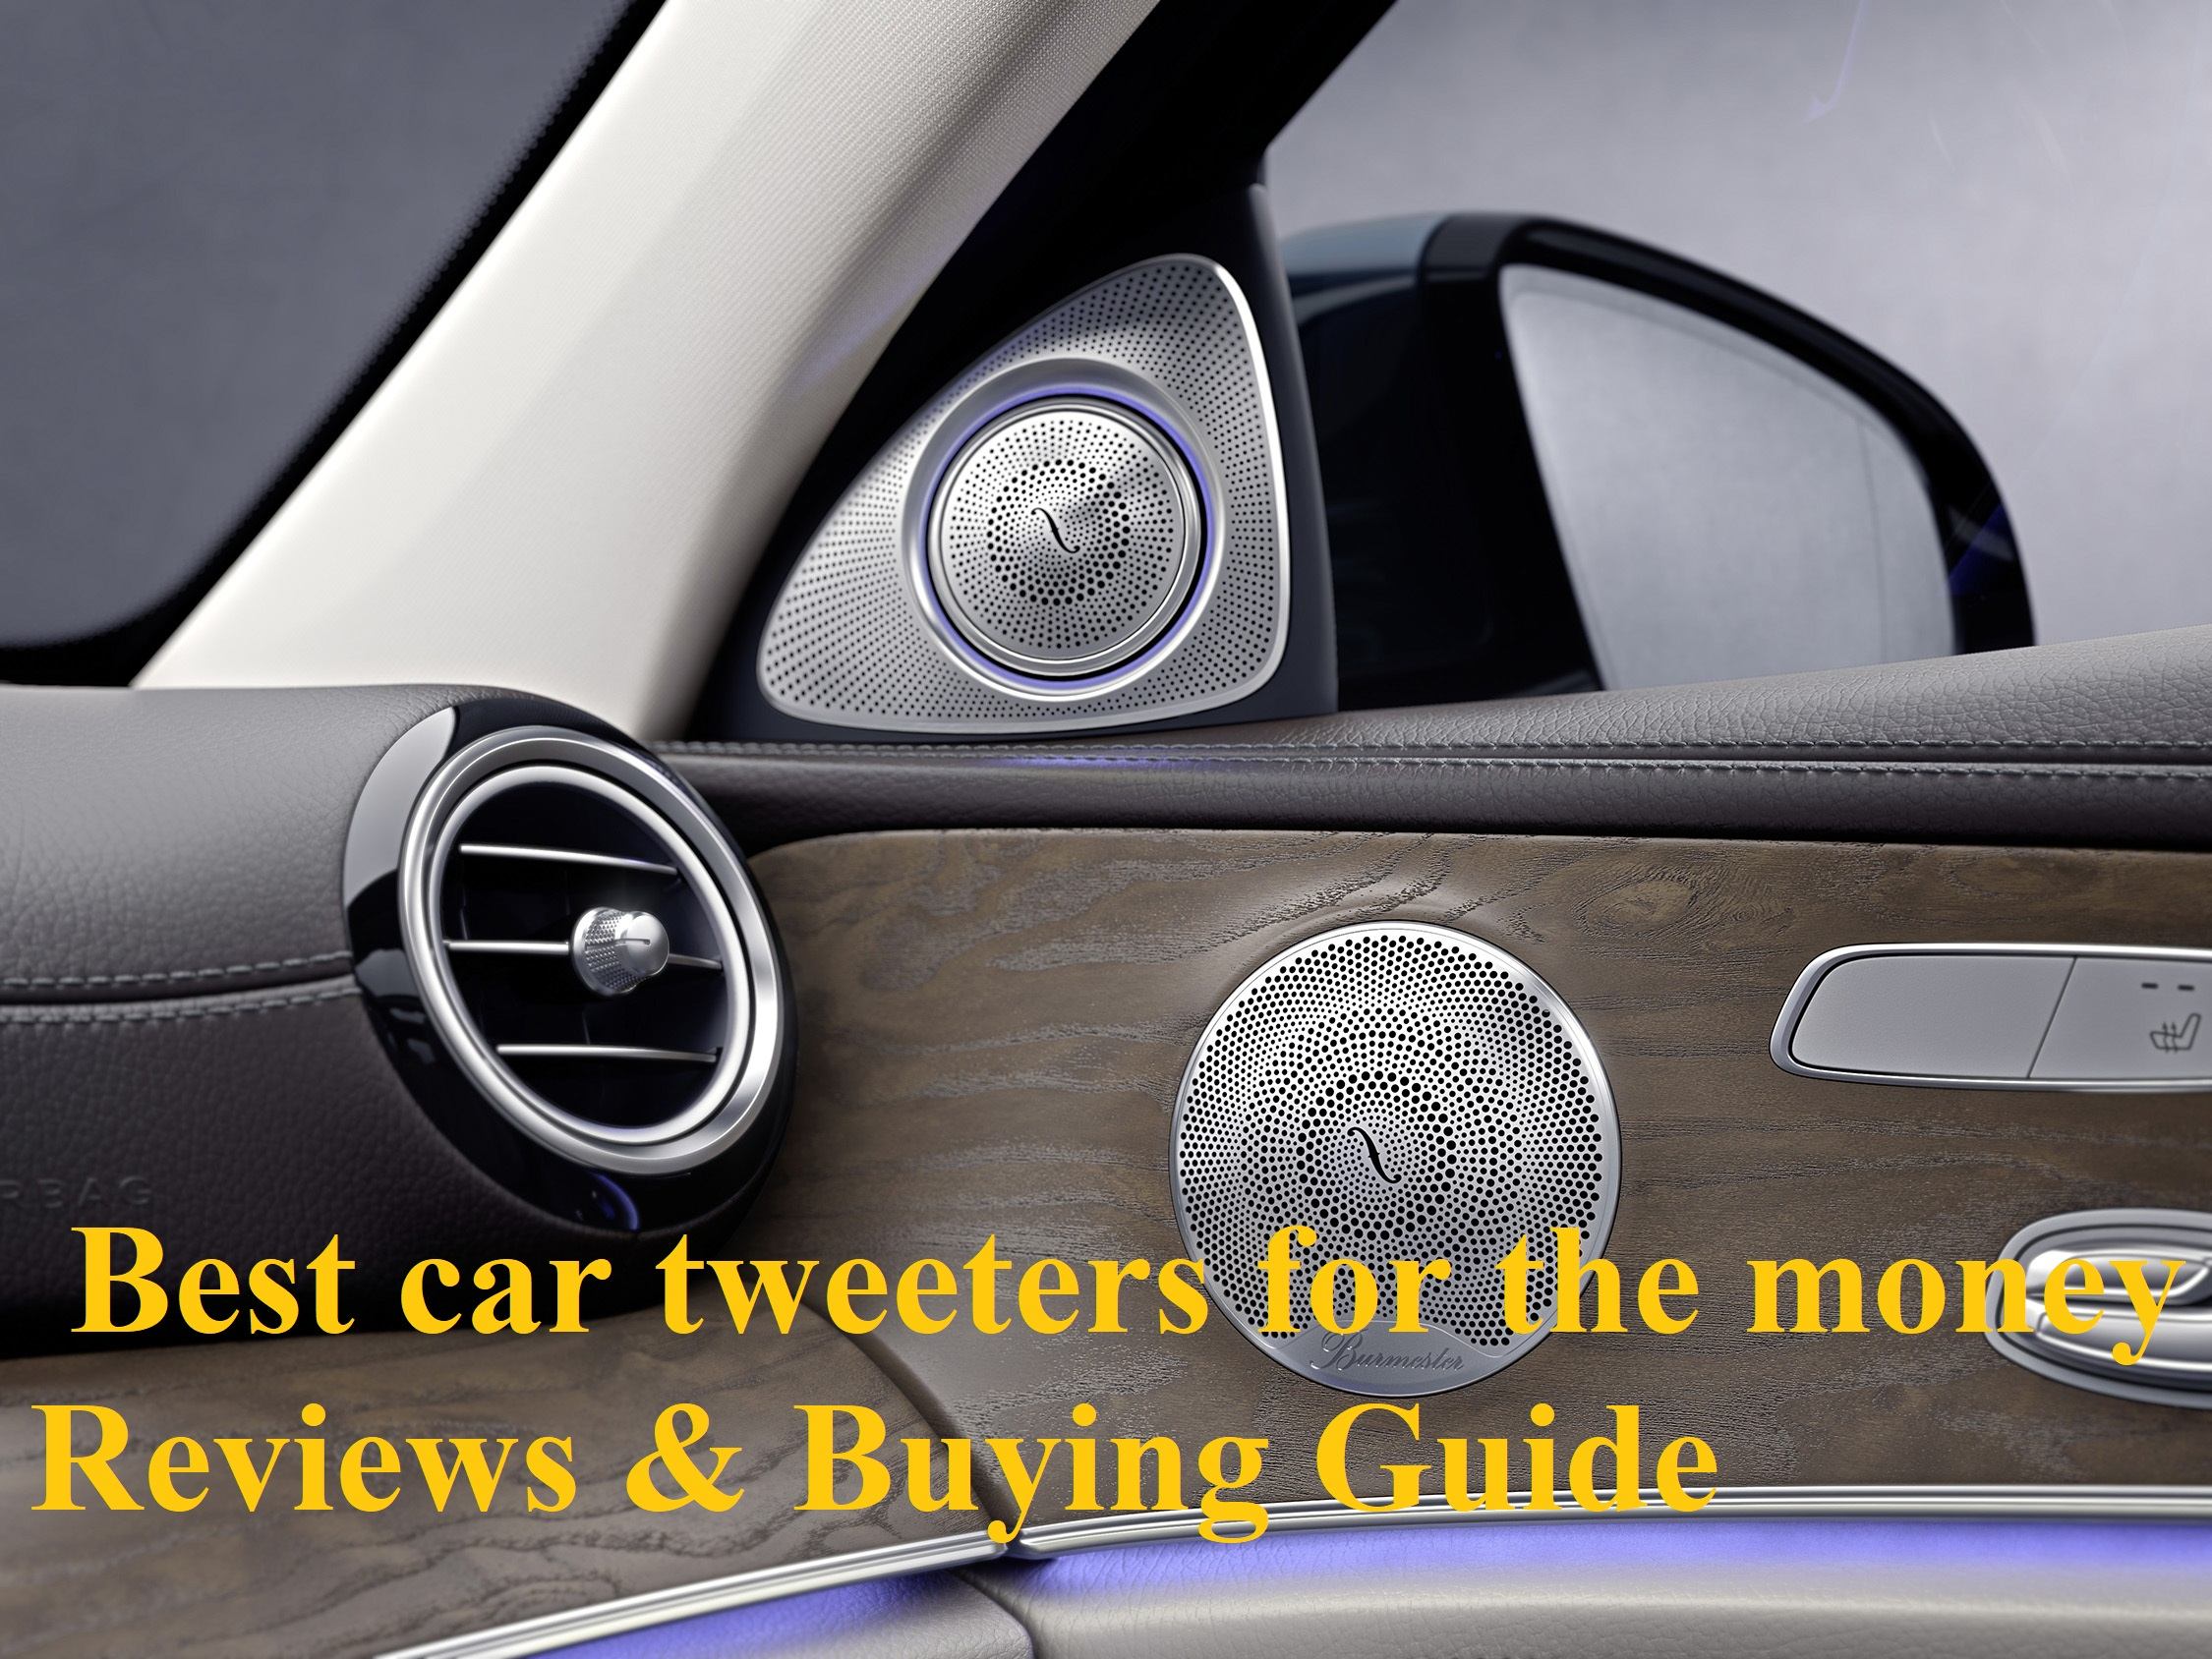 Best car tweeters for the money